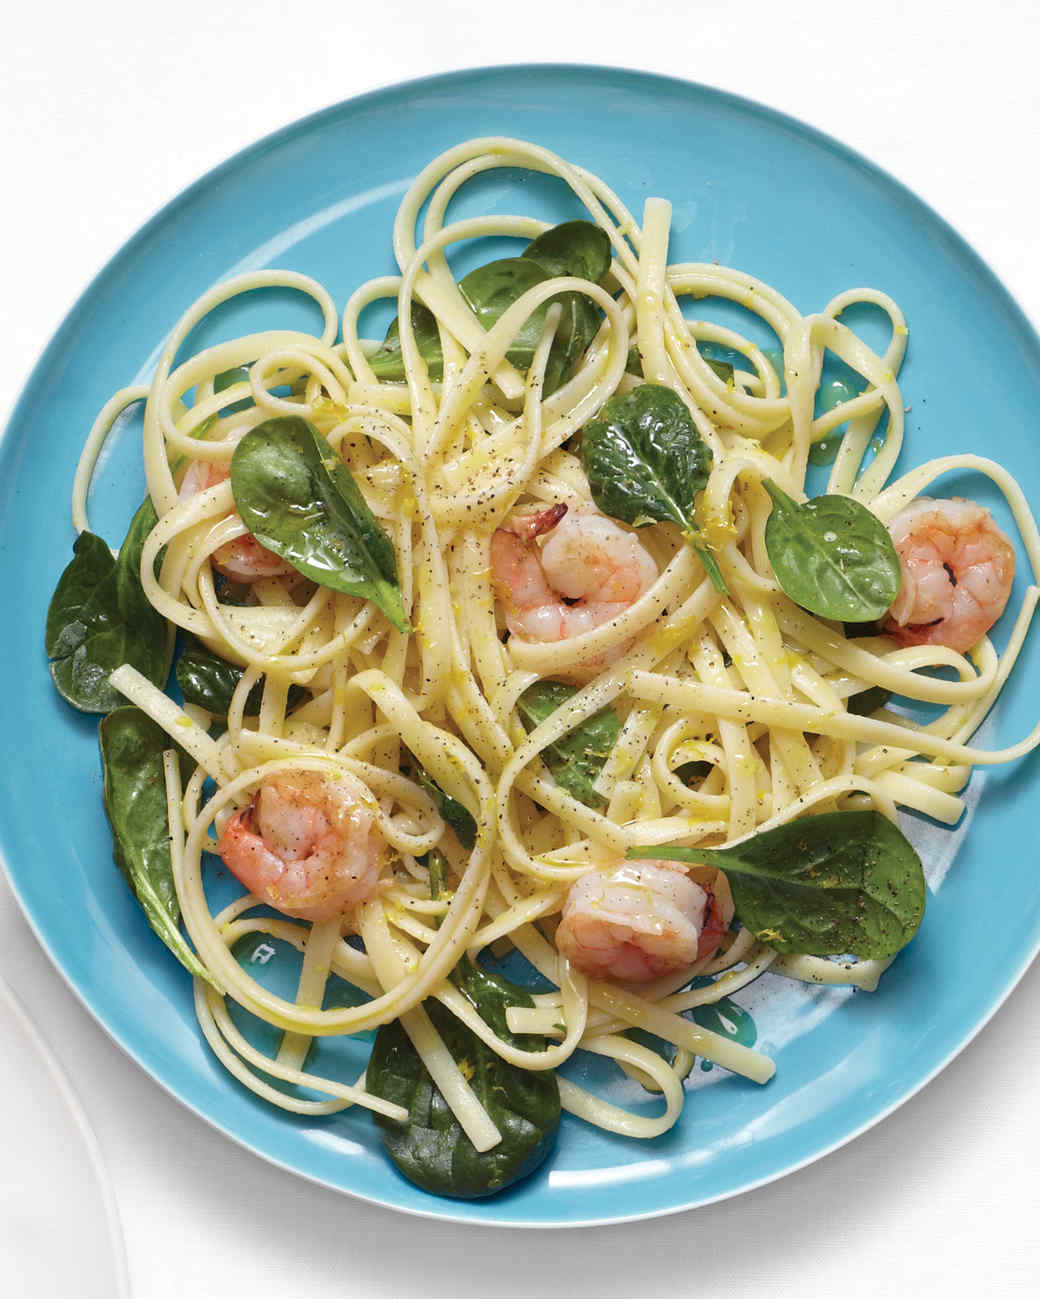 linguine-with-shrimp-and-spinach-d107287-0615.jpg